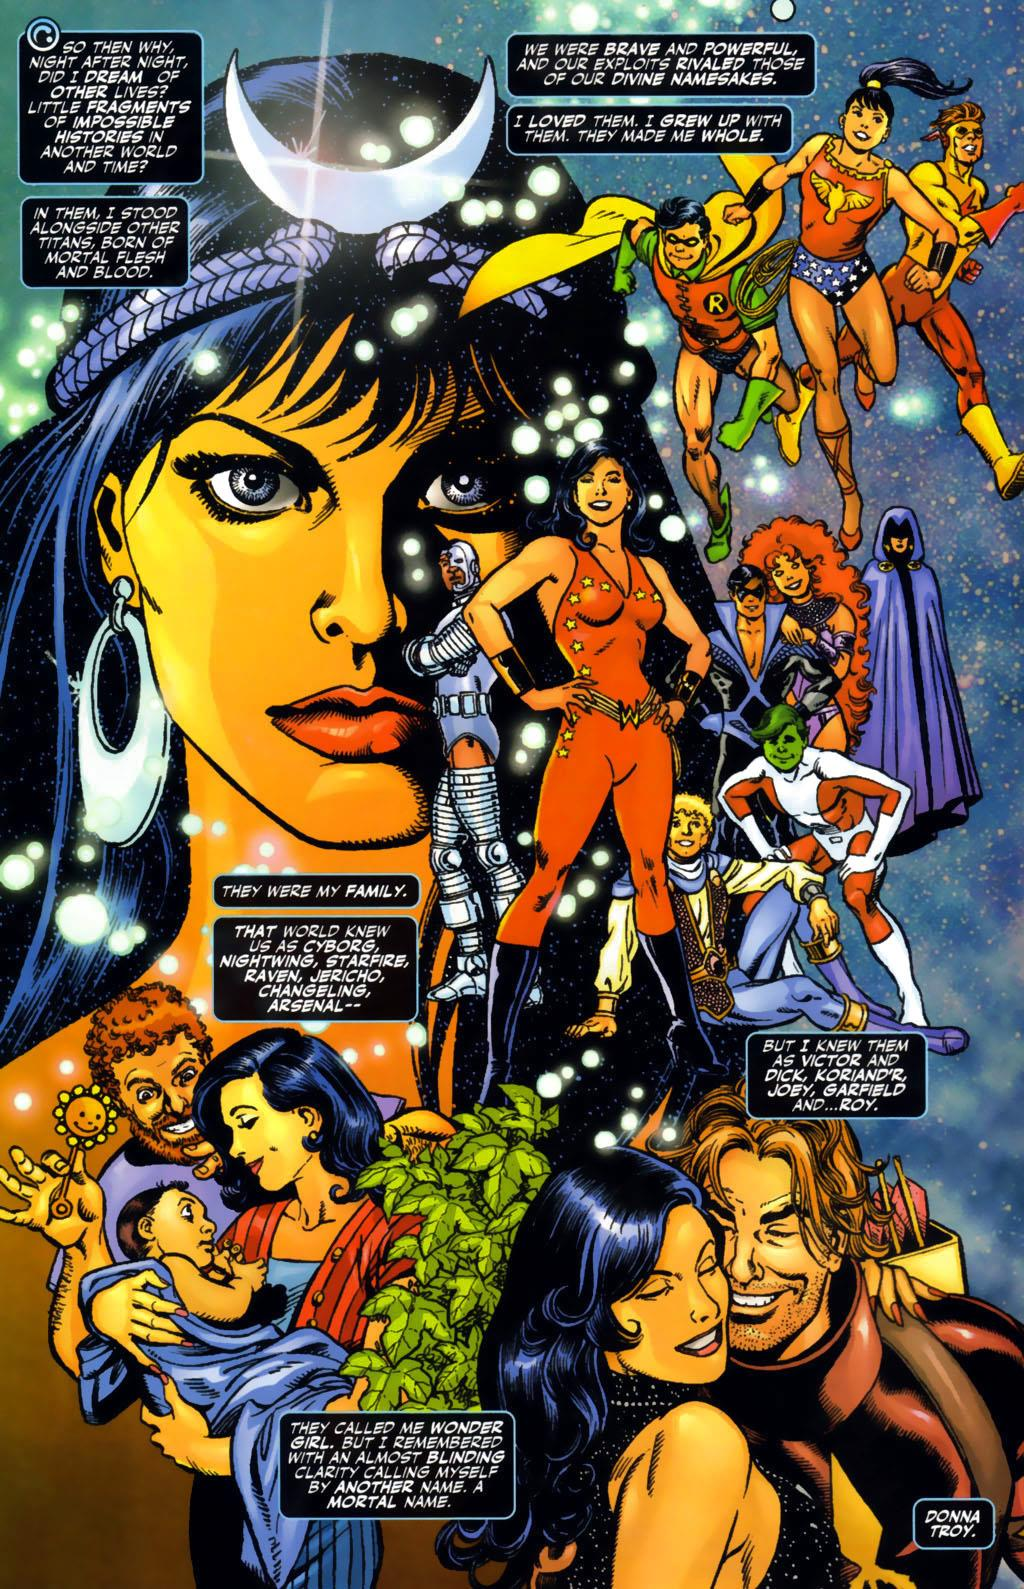 Teen Titans Outsiders The Death and Return of Donna Troy review